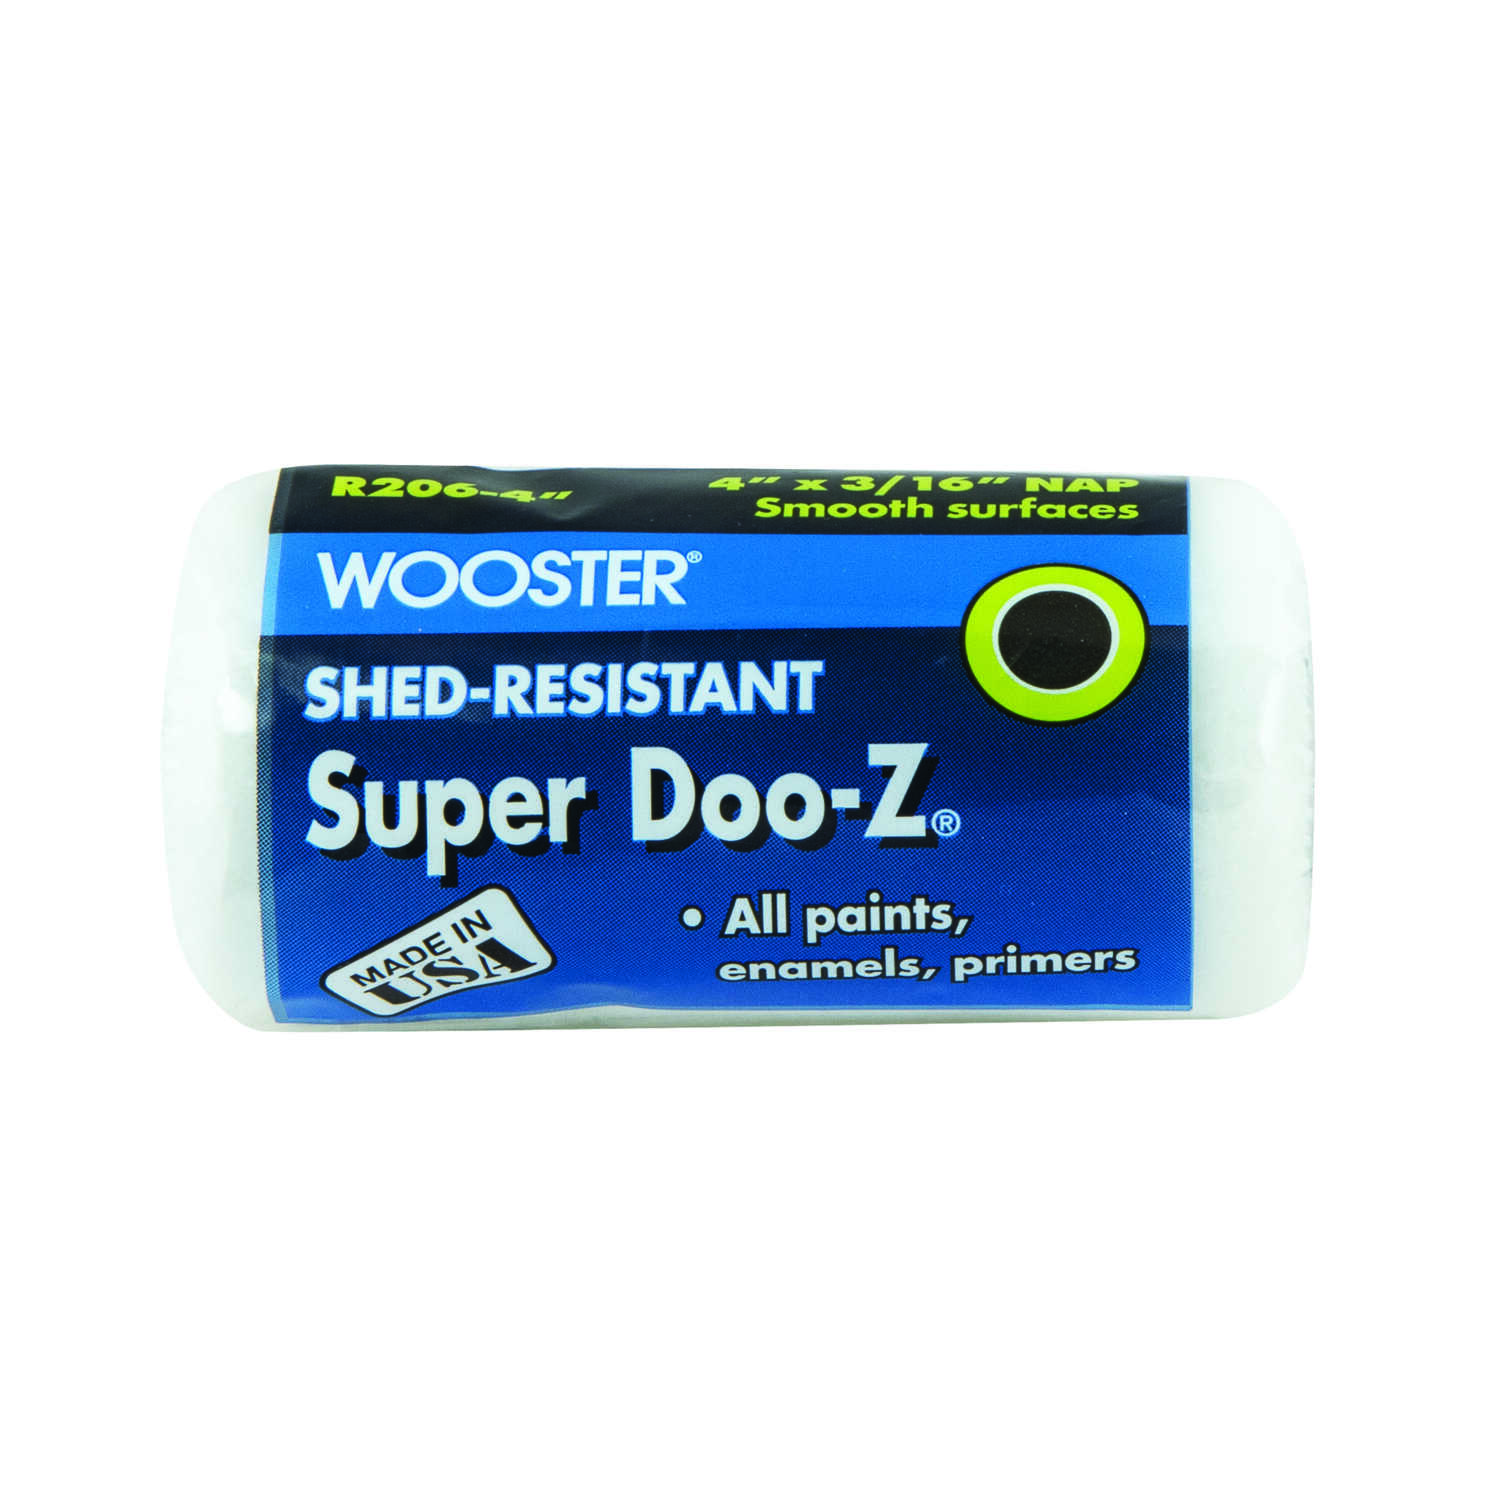 Wooster  Super Doo-Z  Fabric  3/16 in.  x 4 in. W Paint Roller Cover  1 pk